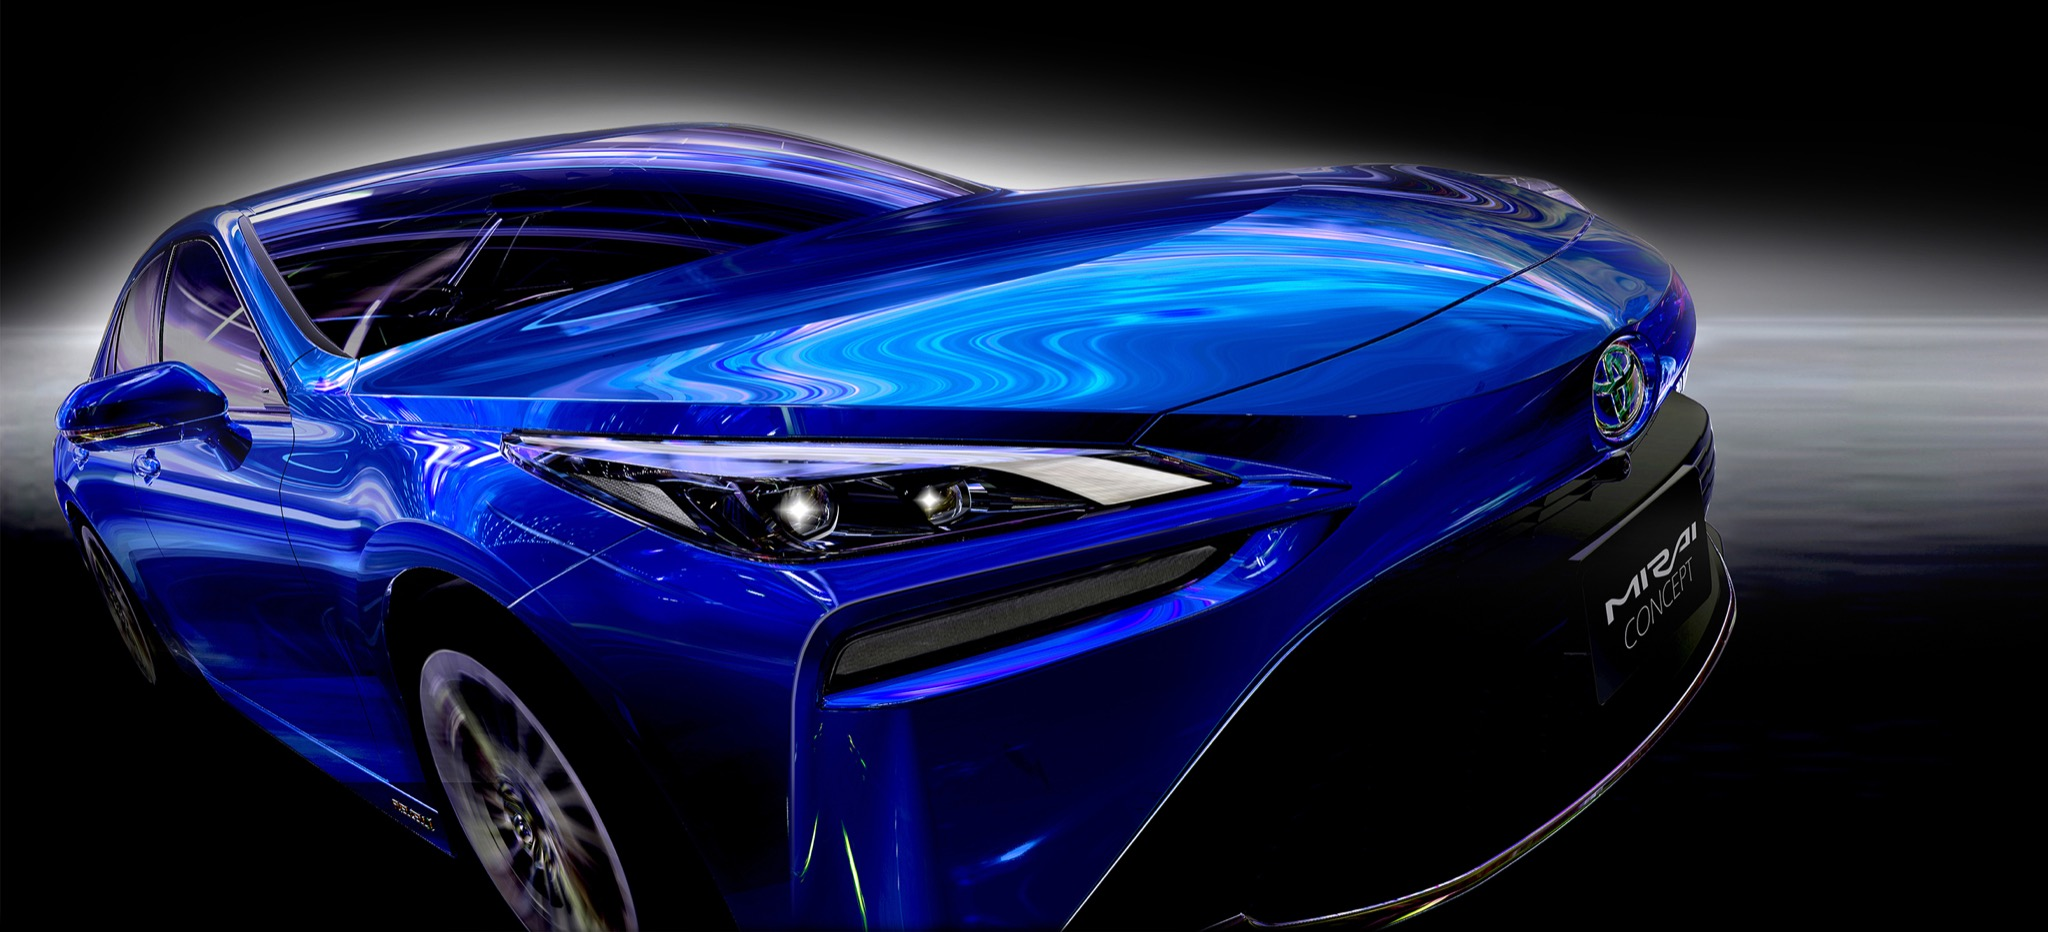 Best Car Battery 2021 The 2021 Toyota Mirai hydrogen fuel cell car has more luxury, less